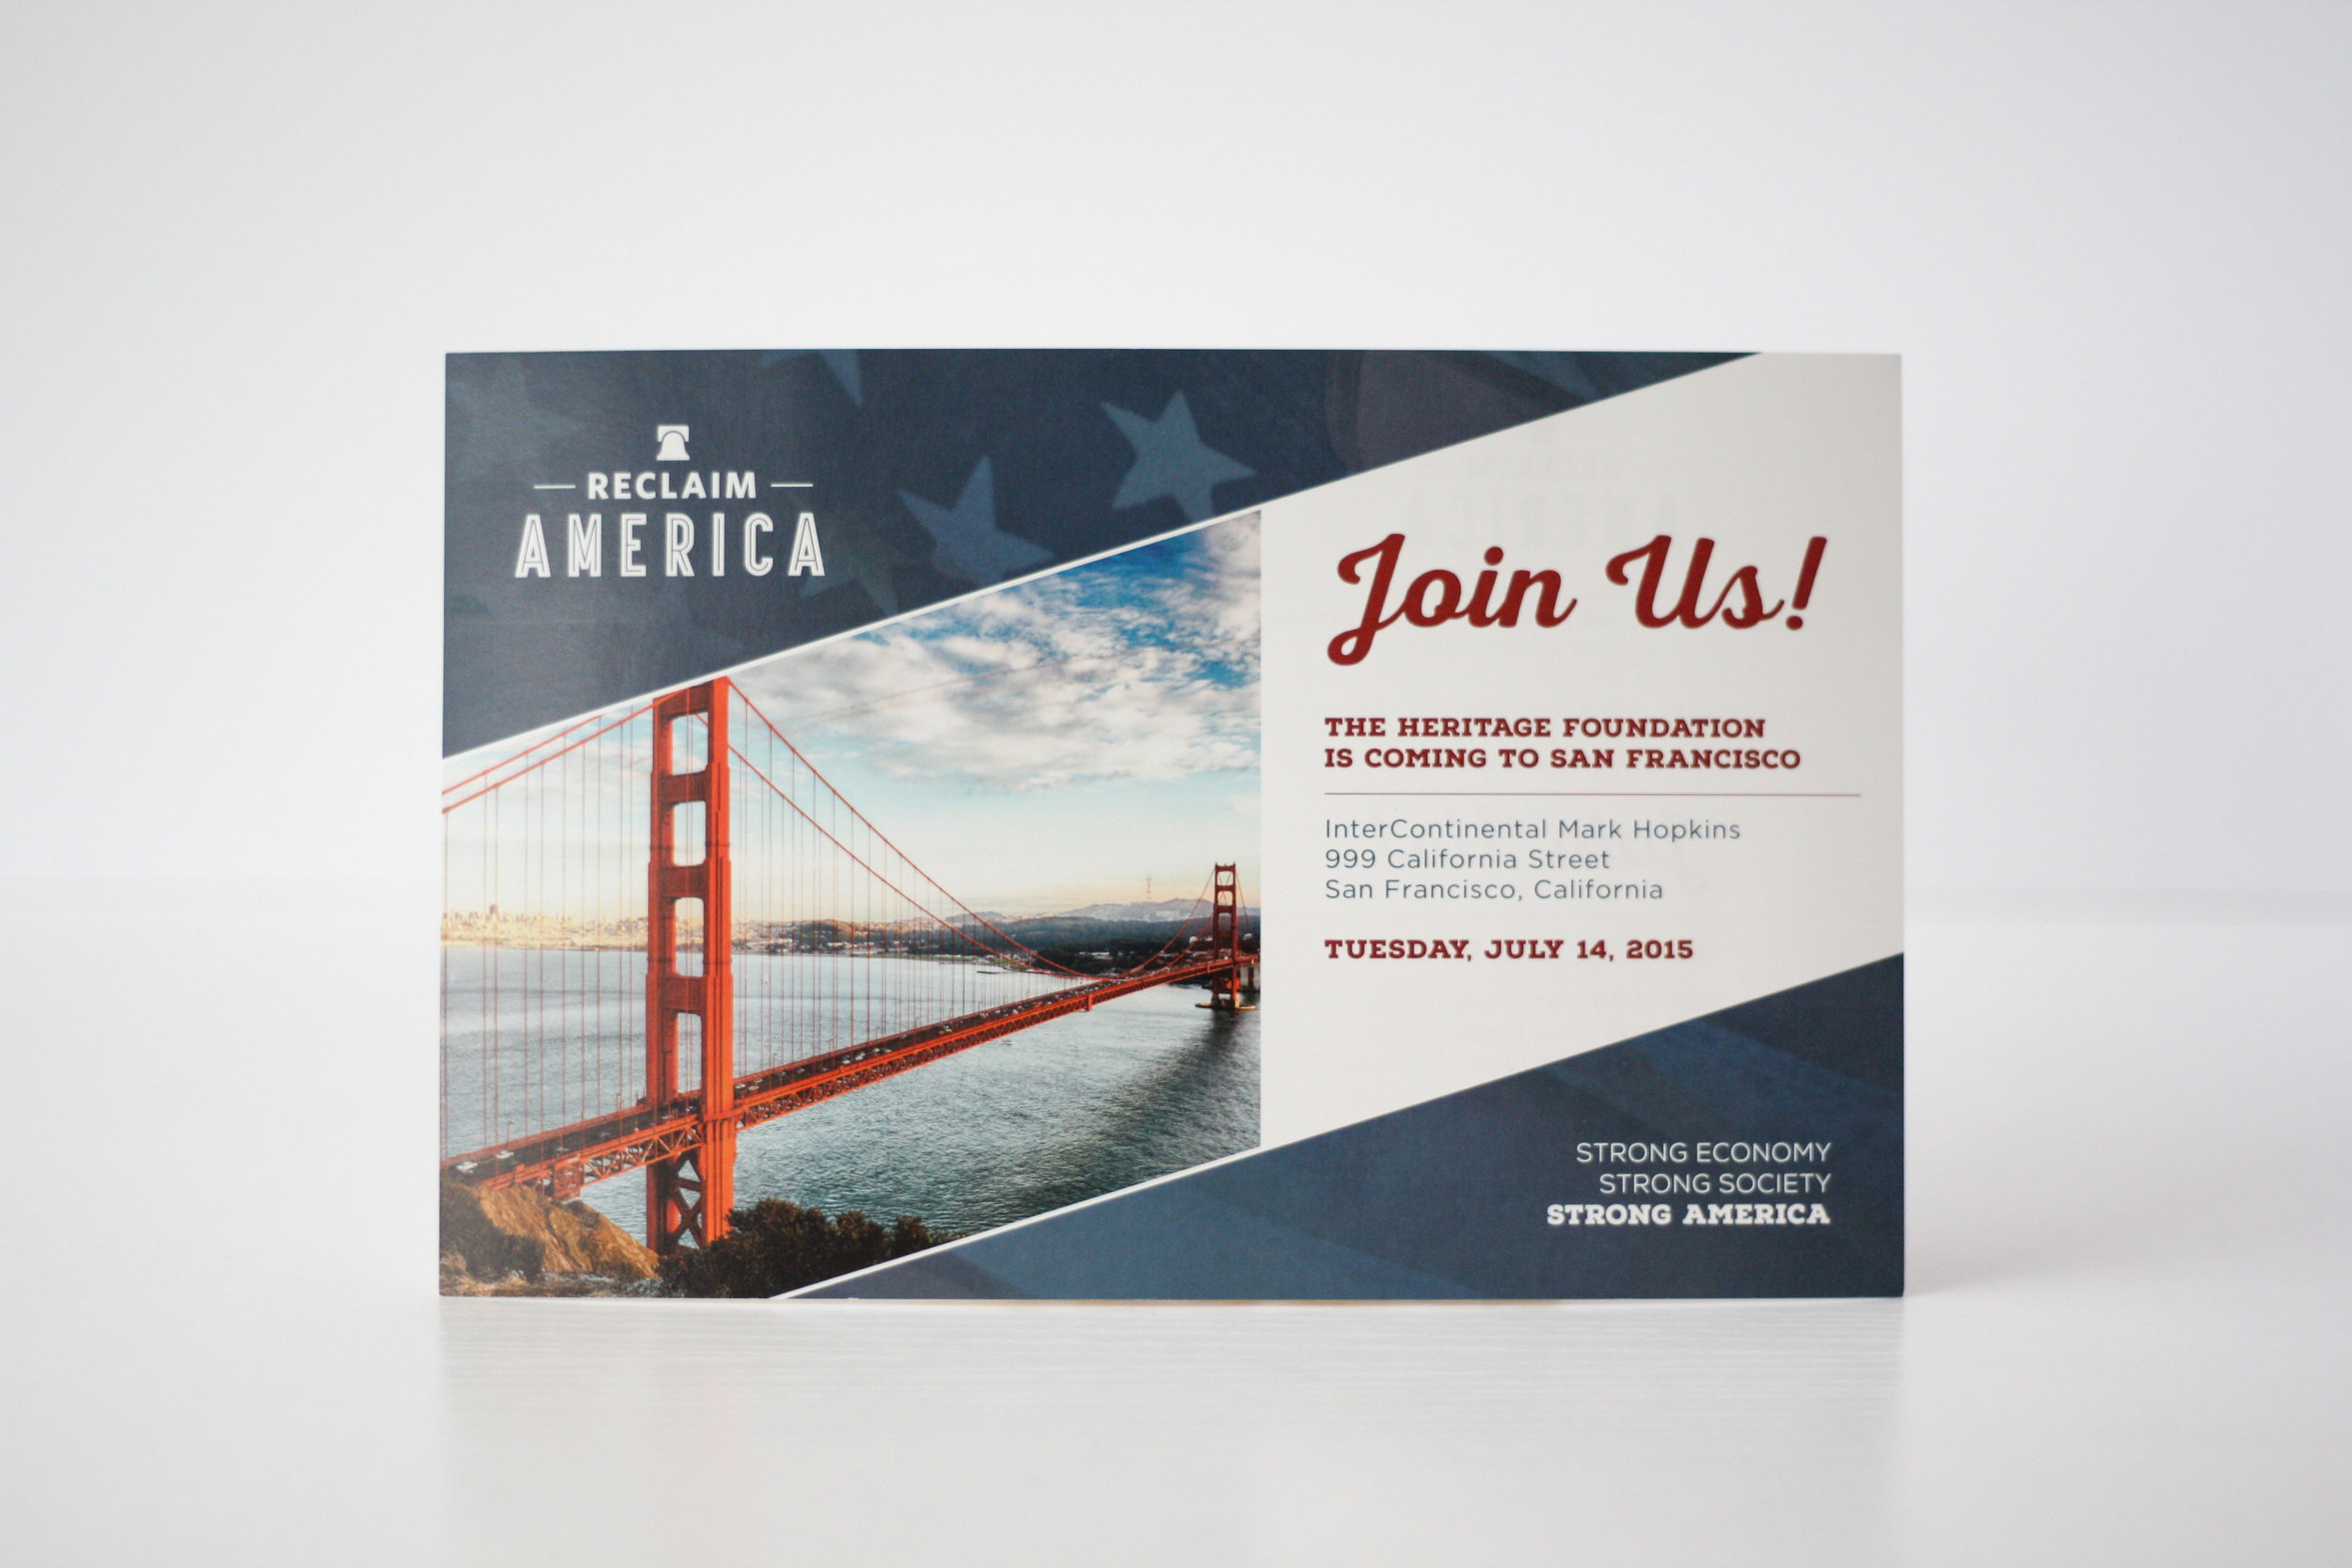 Reclaim America Campaign | Corporate Event Invitation | Casi Long Design | casilong.com:portfolio | #casilongdesign #fearlesspursuit 10.jpg